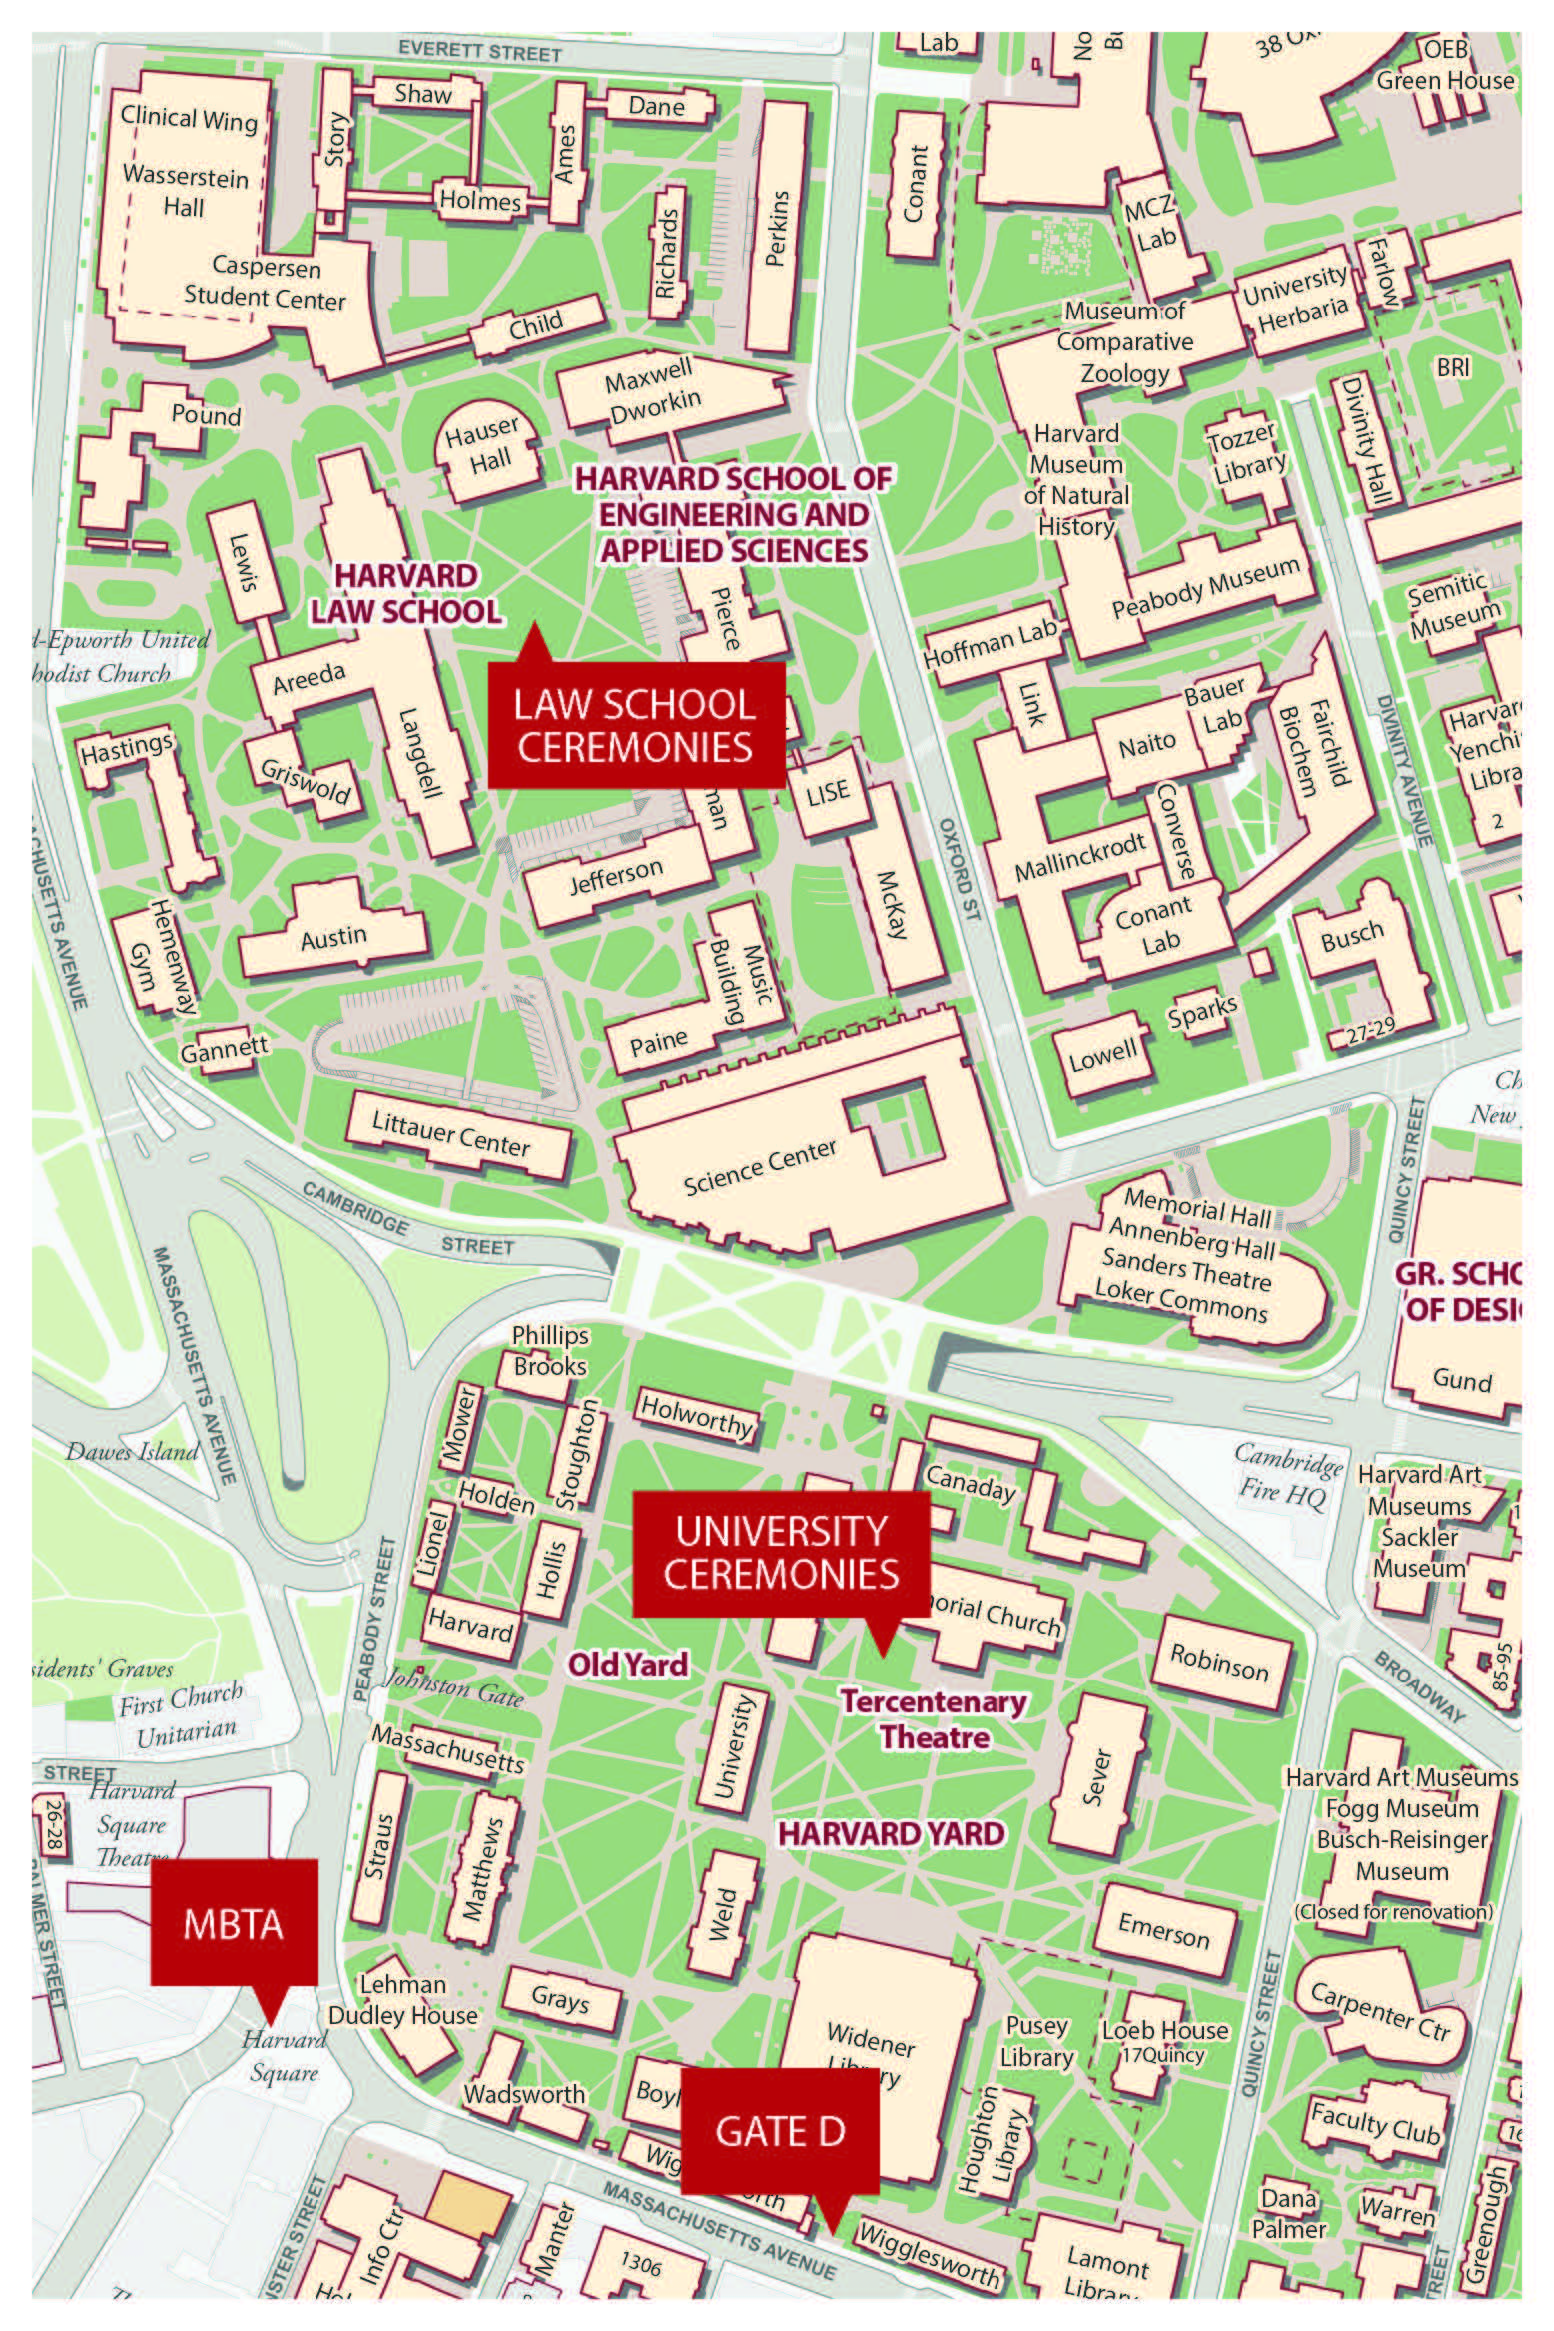 Harvard Law Maps | Harvard Law on berkeley law, cornell law, unc law, boston college law, mcgill law, stanford law, george mason law, indiana bloomington law, ucla law, zone law, unlv law, upenn law, unh law, fiu law, nyu law, wvu law, duke law, suny buffalo law, harvard law, ivy league law,